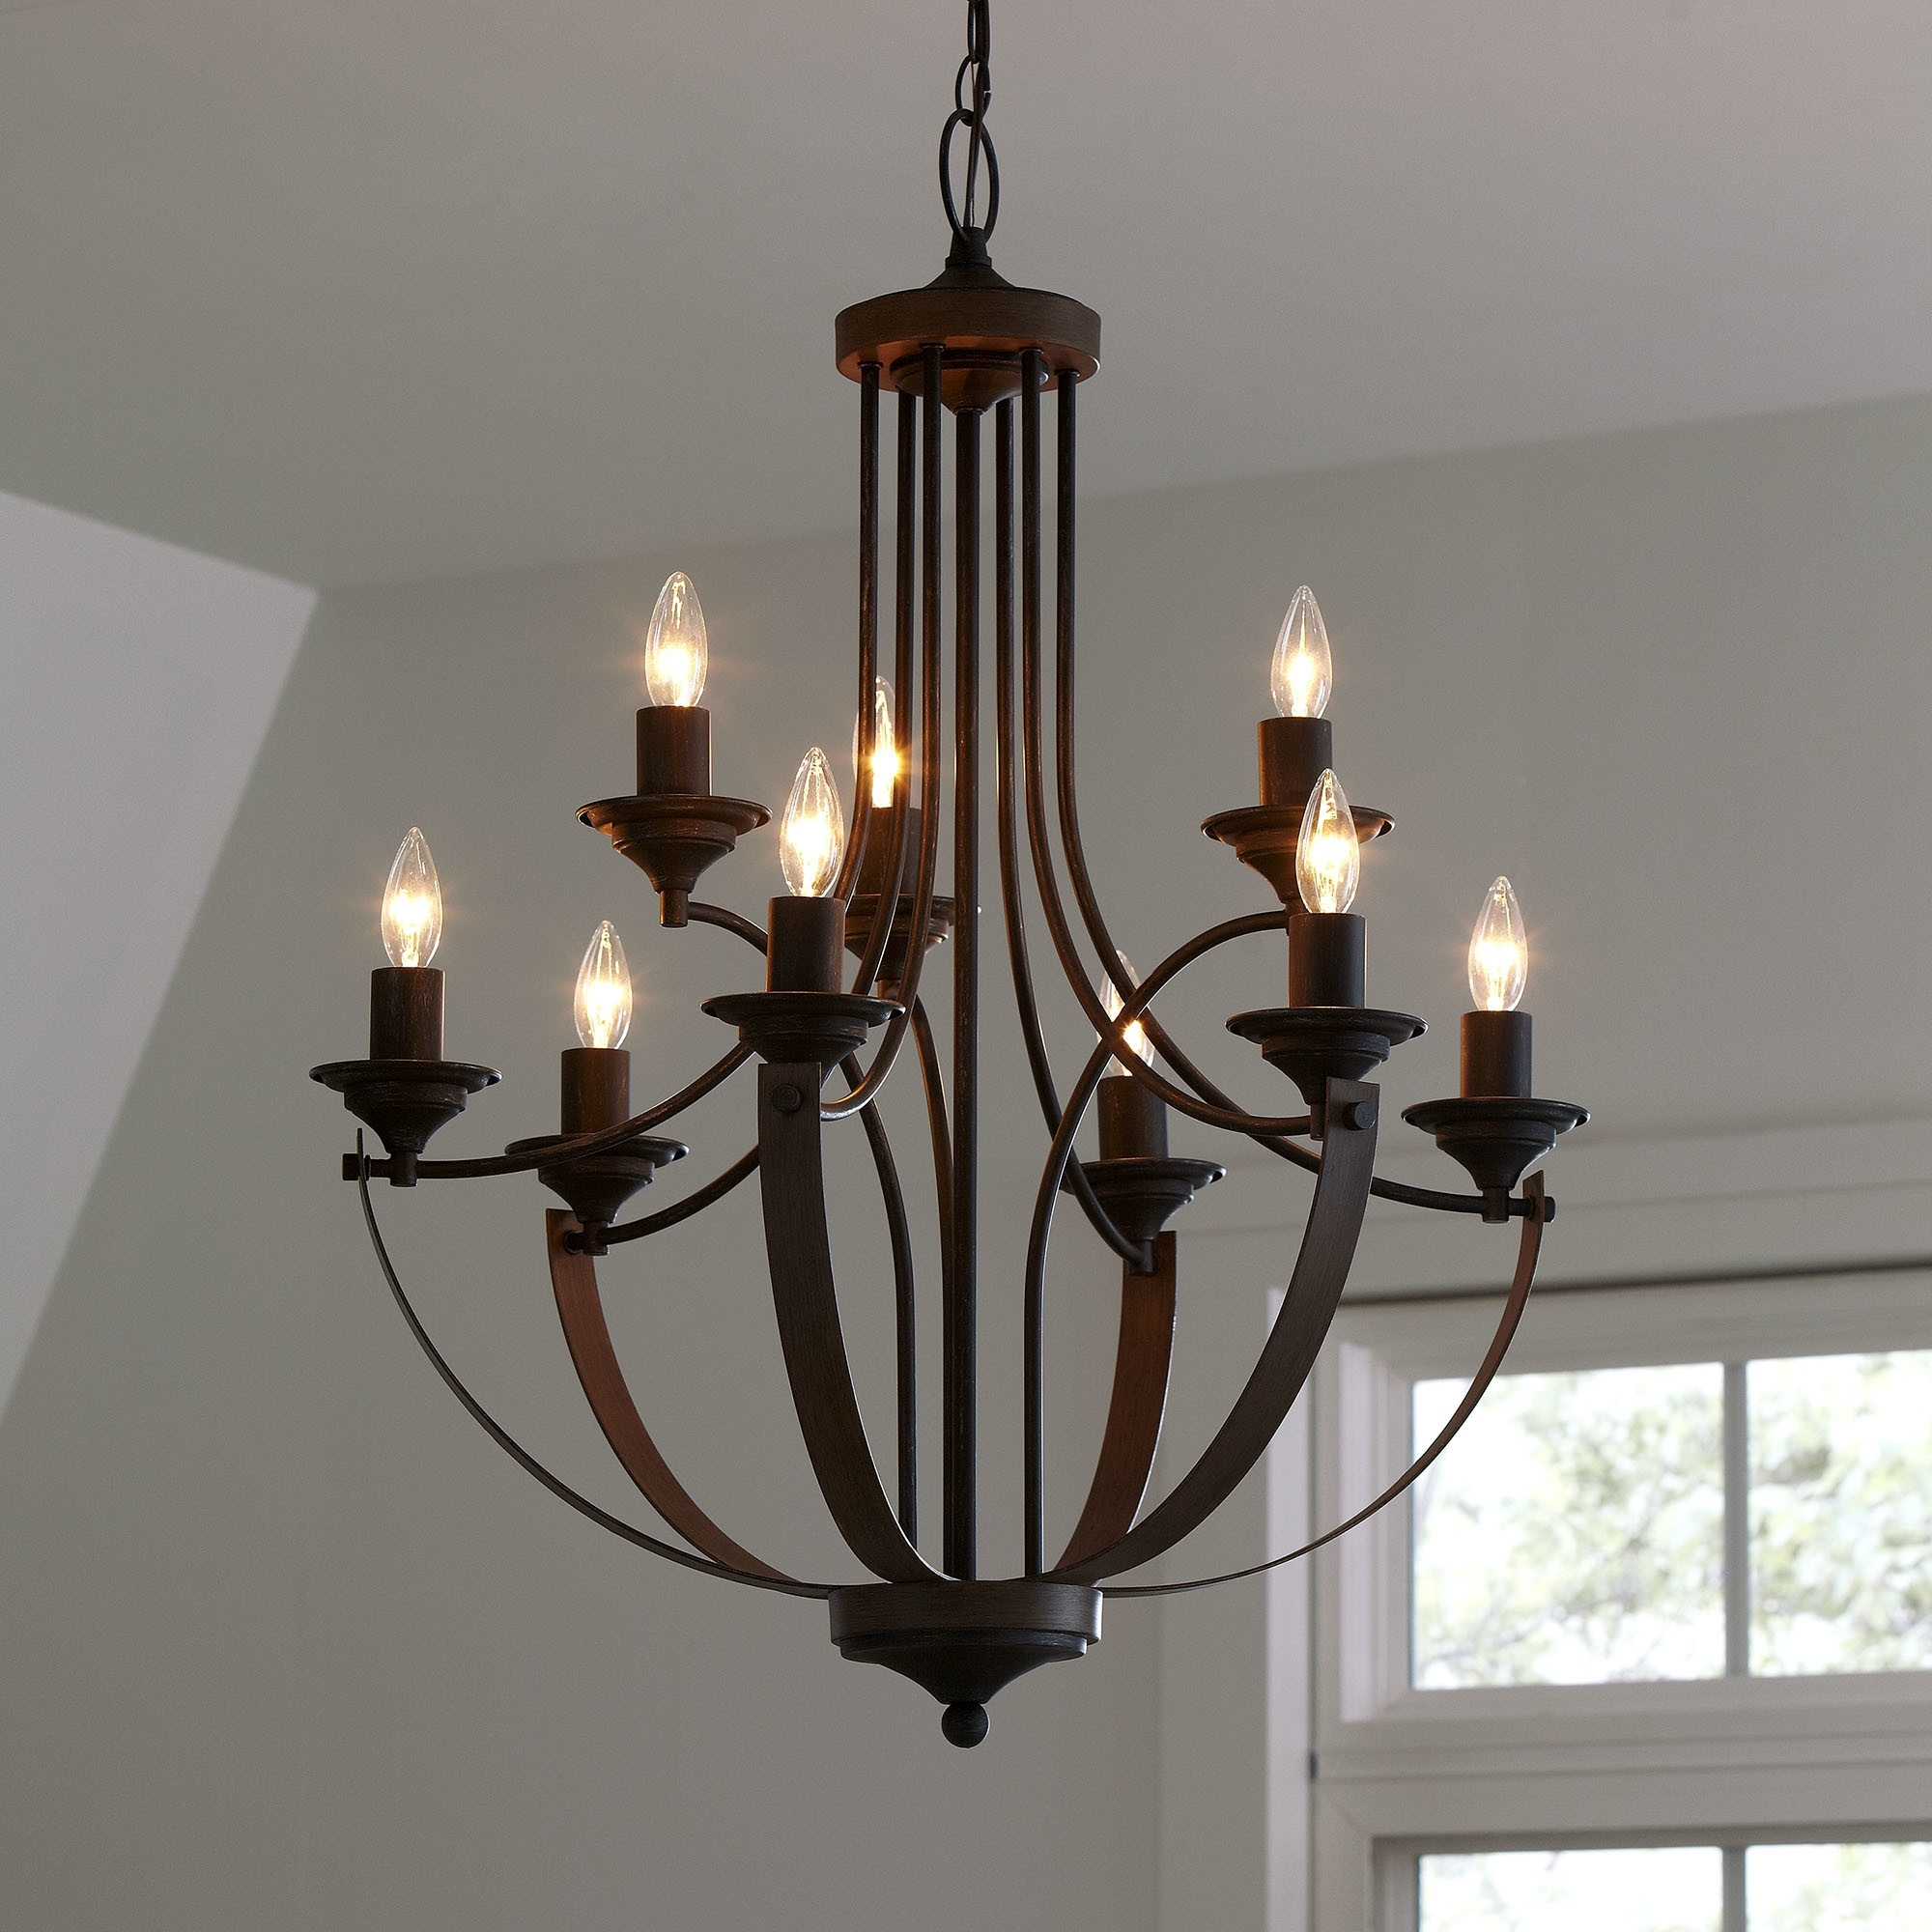 Chandeliers : Wayfair Chandeliers Luxury Chandeliers Wayfair Camilla Regarding Preferred Wayfair Chandeliers (View 4 of 20)